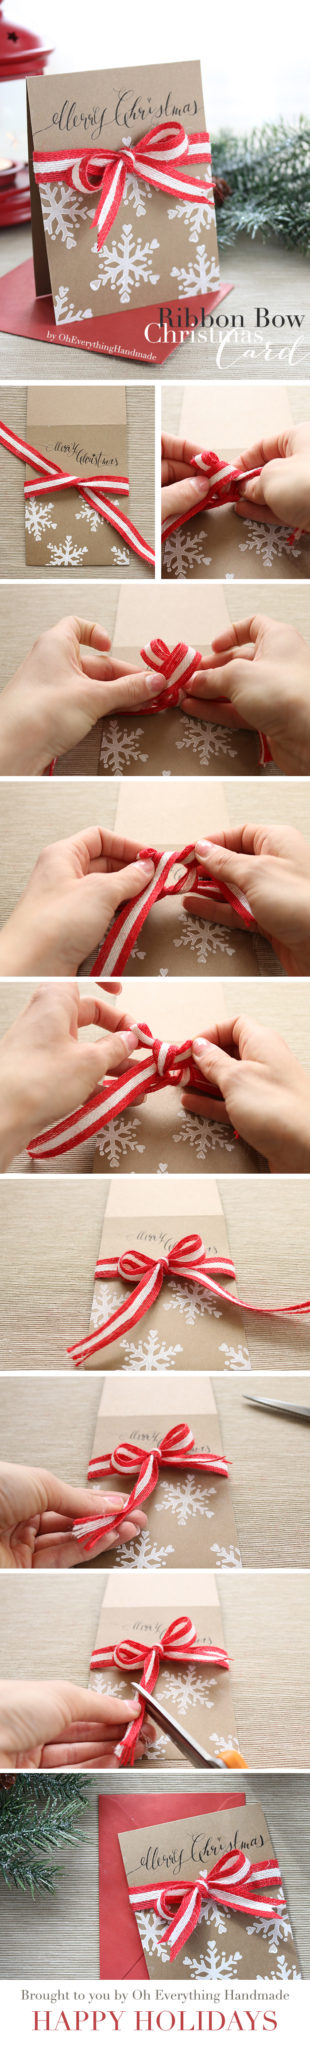 Ribbon Bow Christmas Card DIY by OhEverythingHandmade - Pin